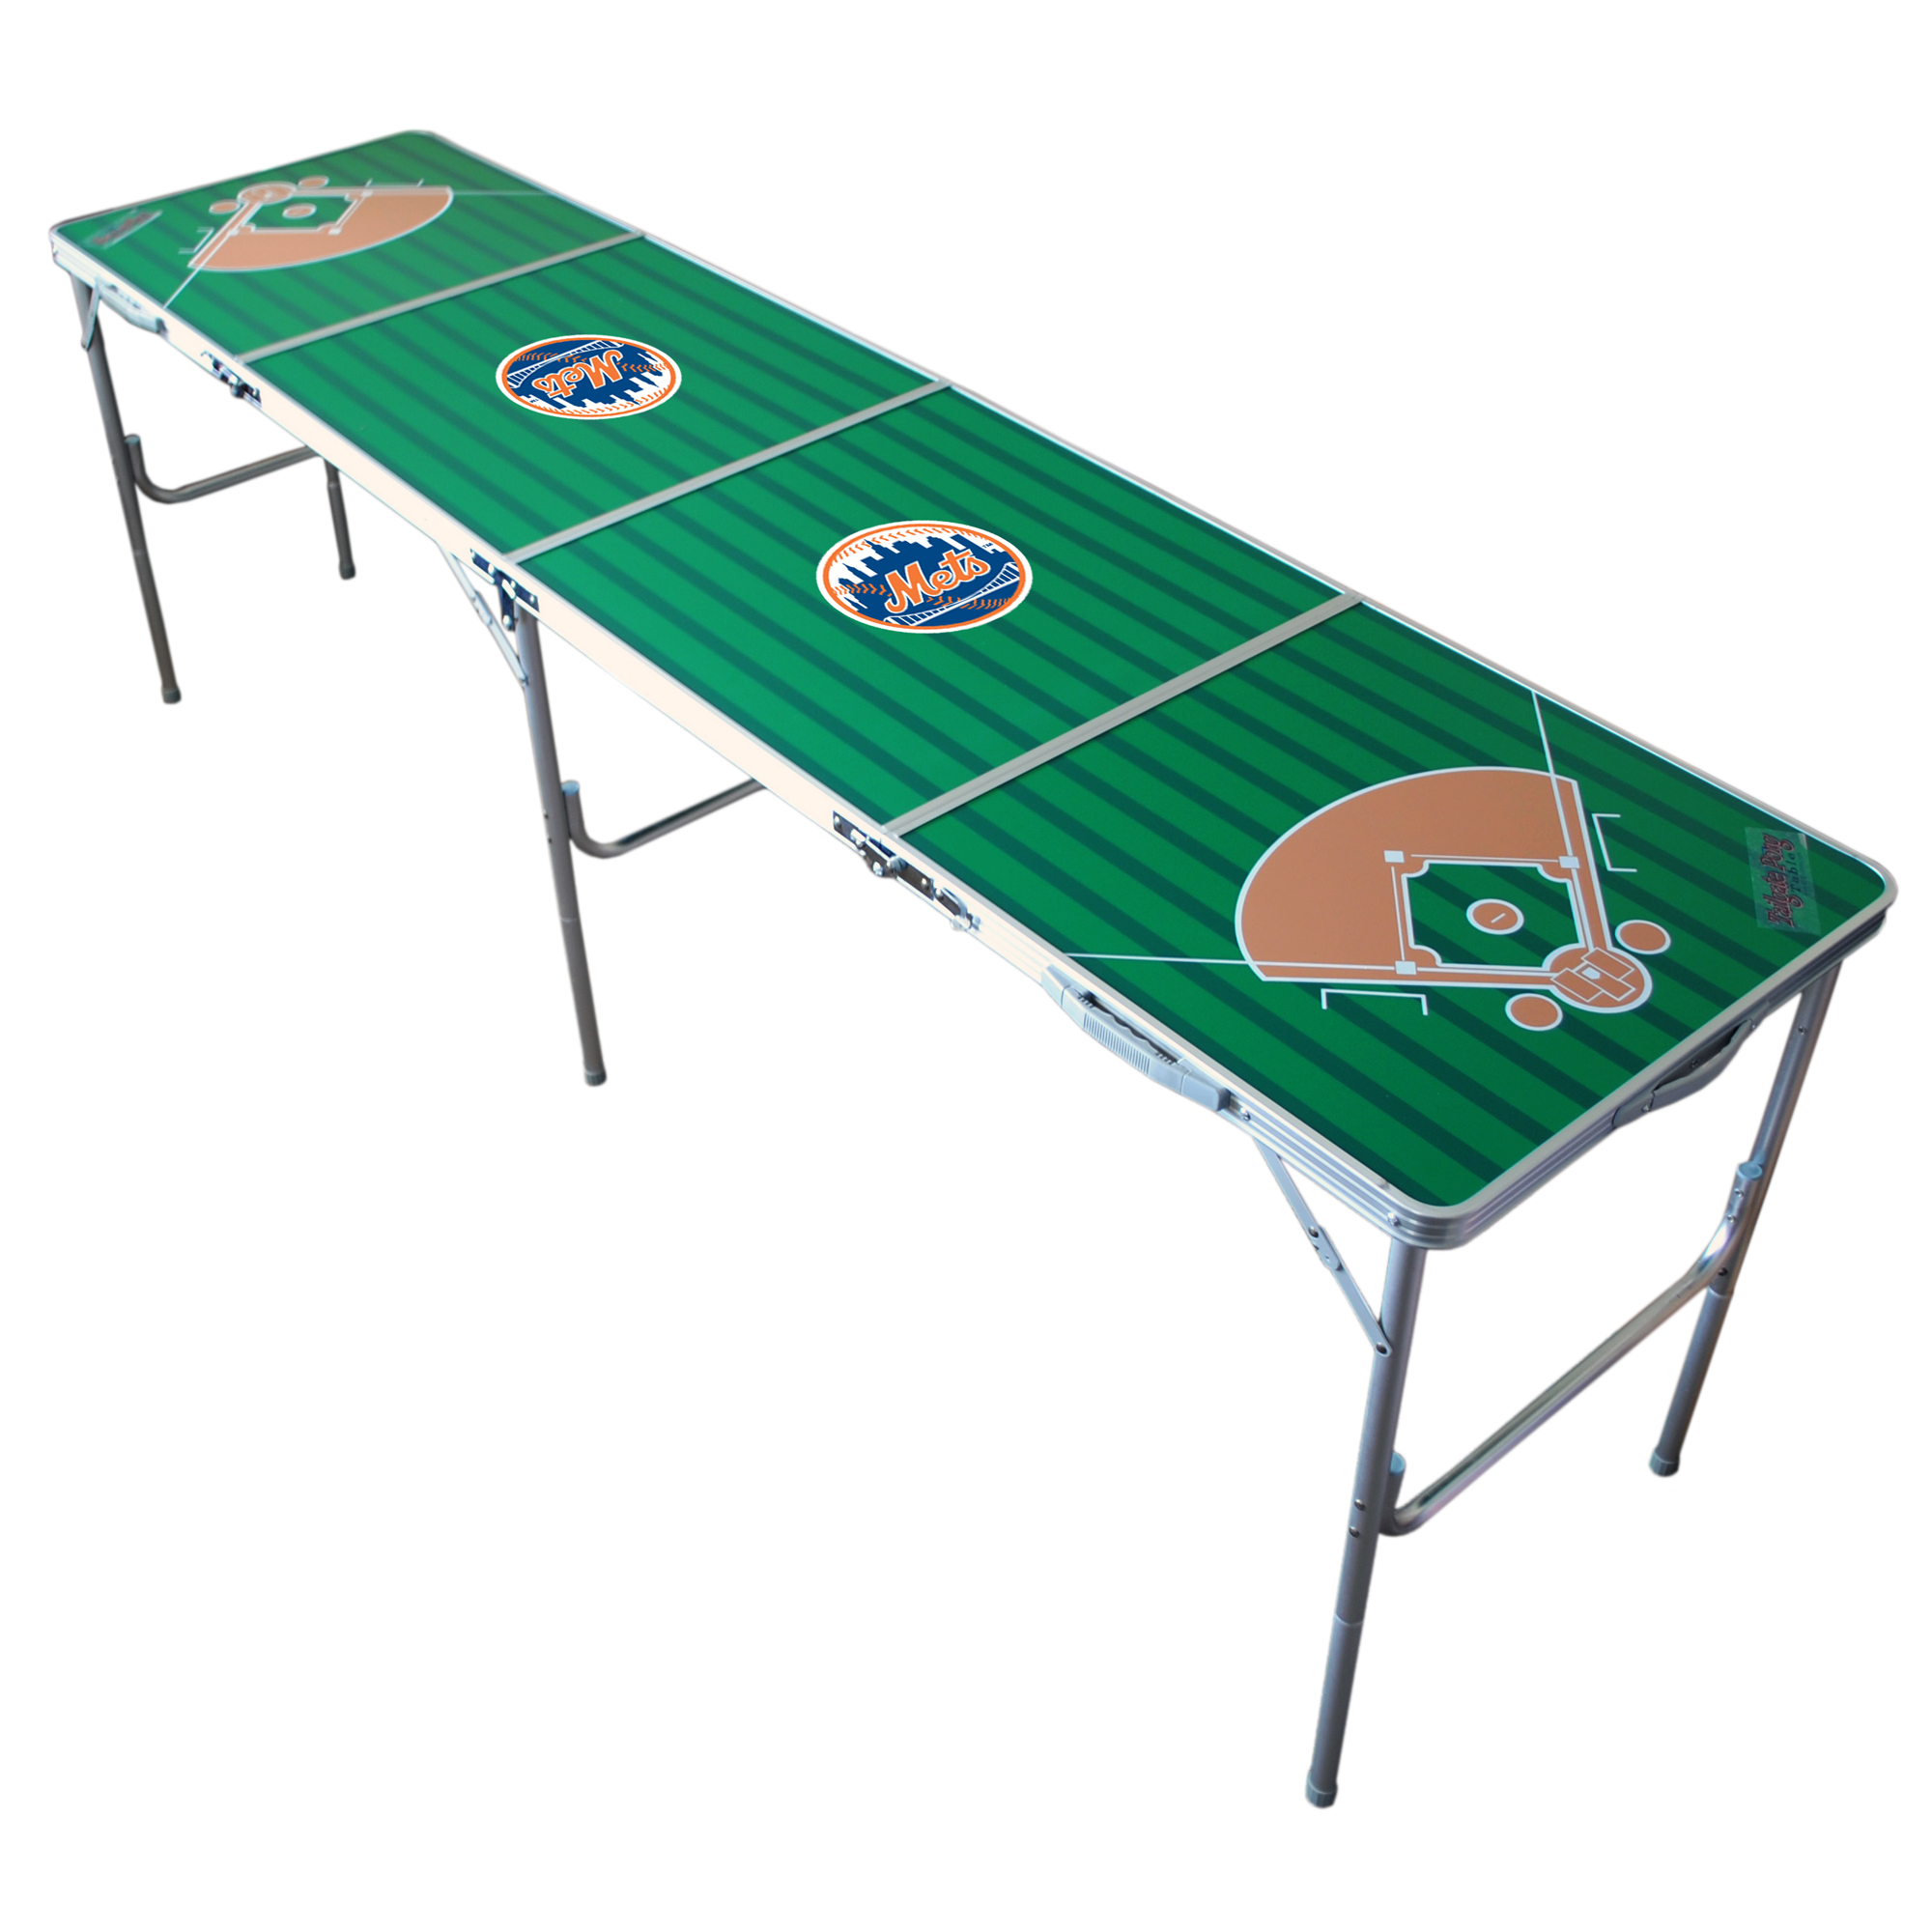 New York Mets 2' x 8' Tailgate Table - No Size